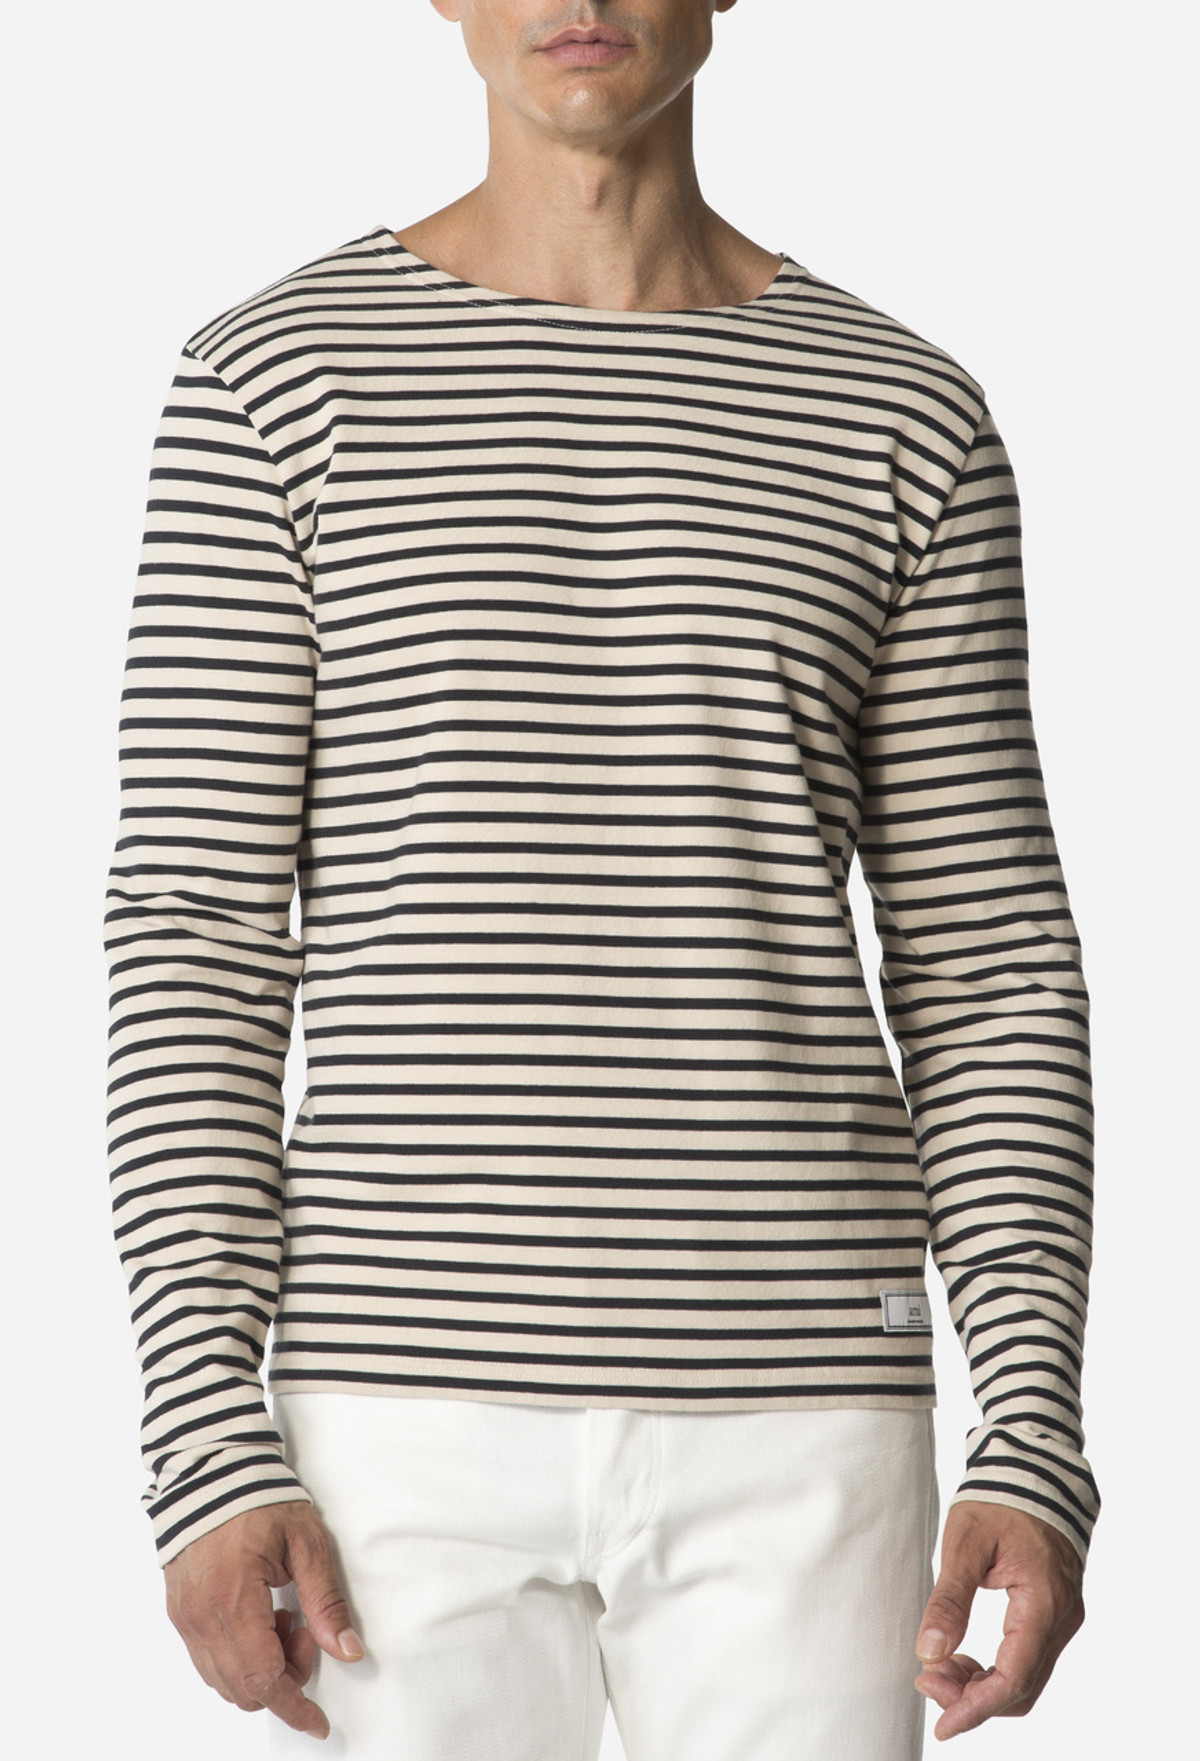 Navy/Tan Stripe T-Shirt